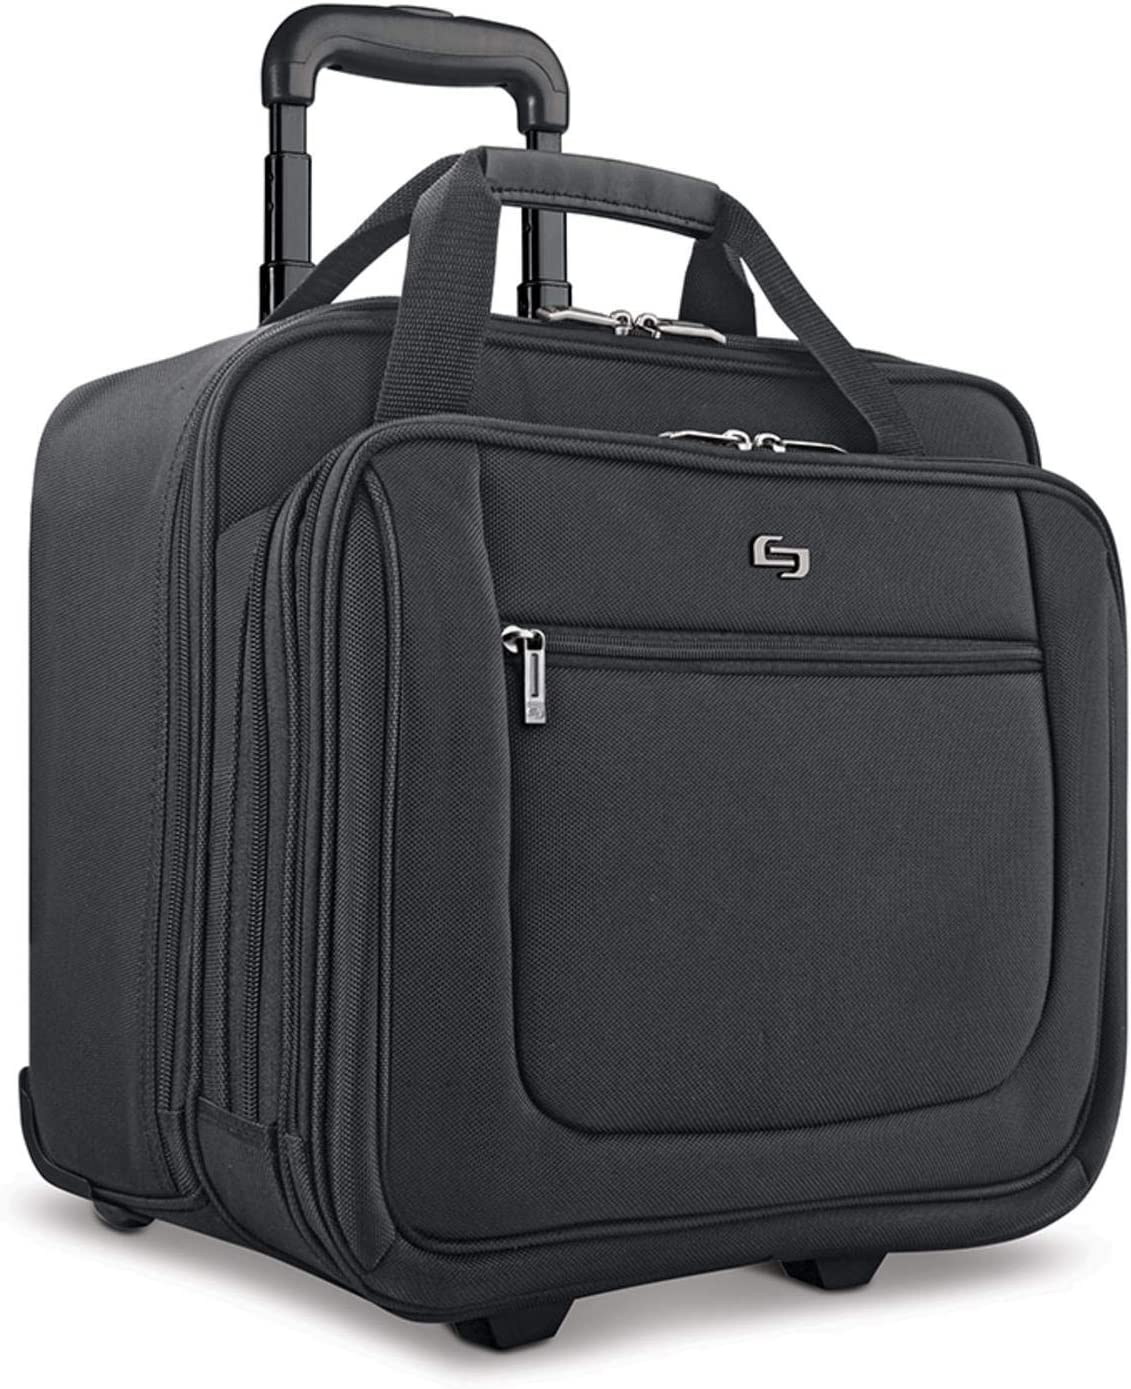 Solo New York Macdougal Rolling Laptop Bag Fits up to 17.3 inch laptop Black Rolling Briefcase for Women and Men